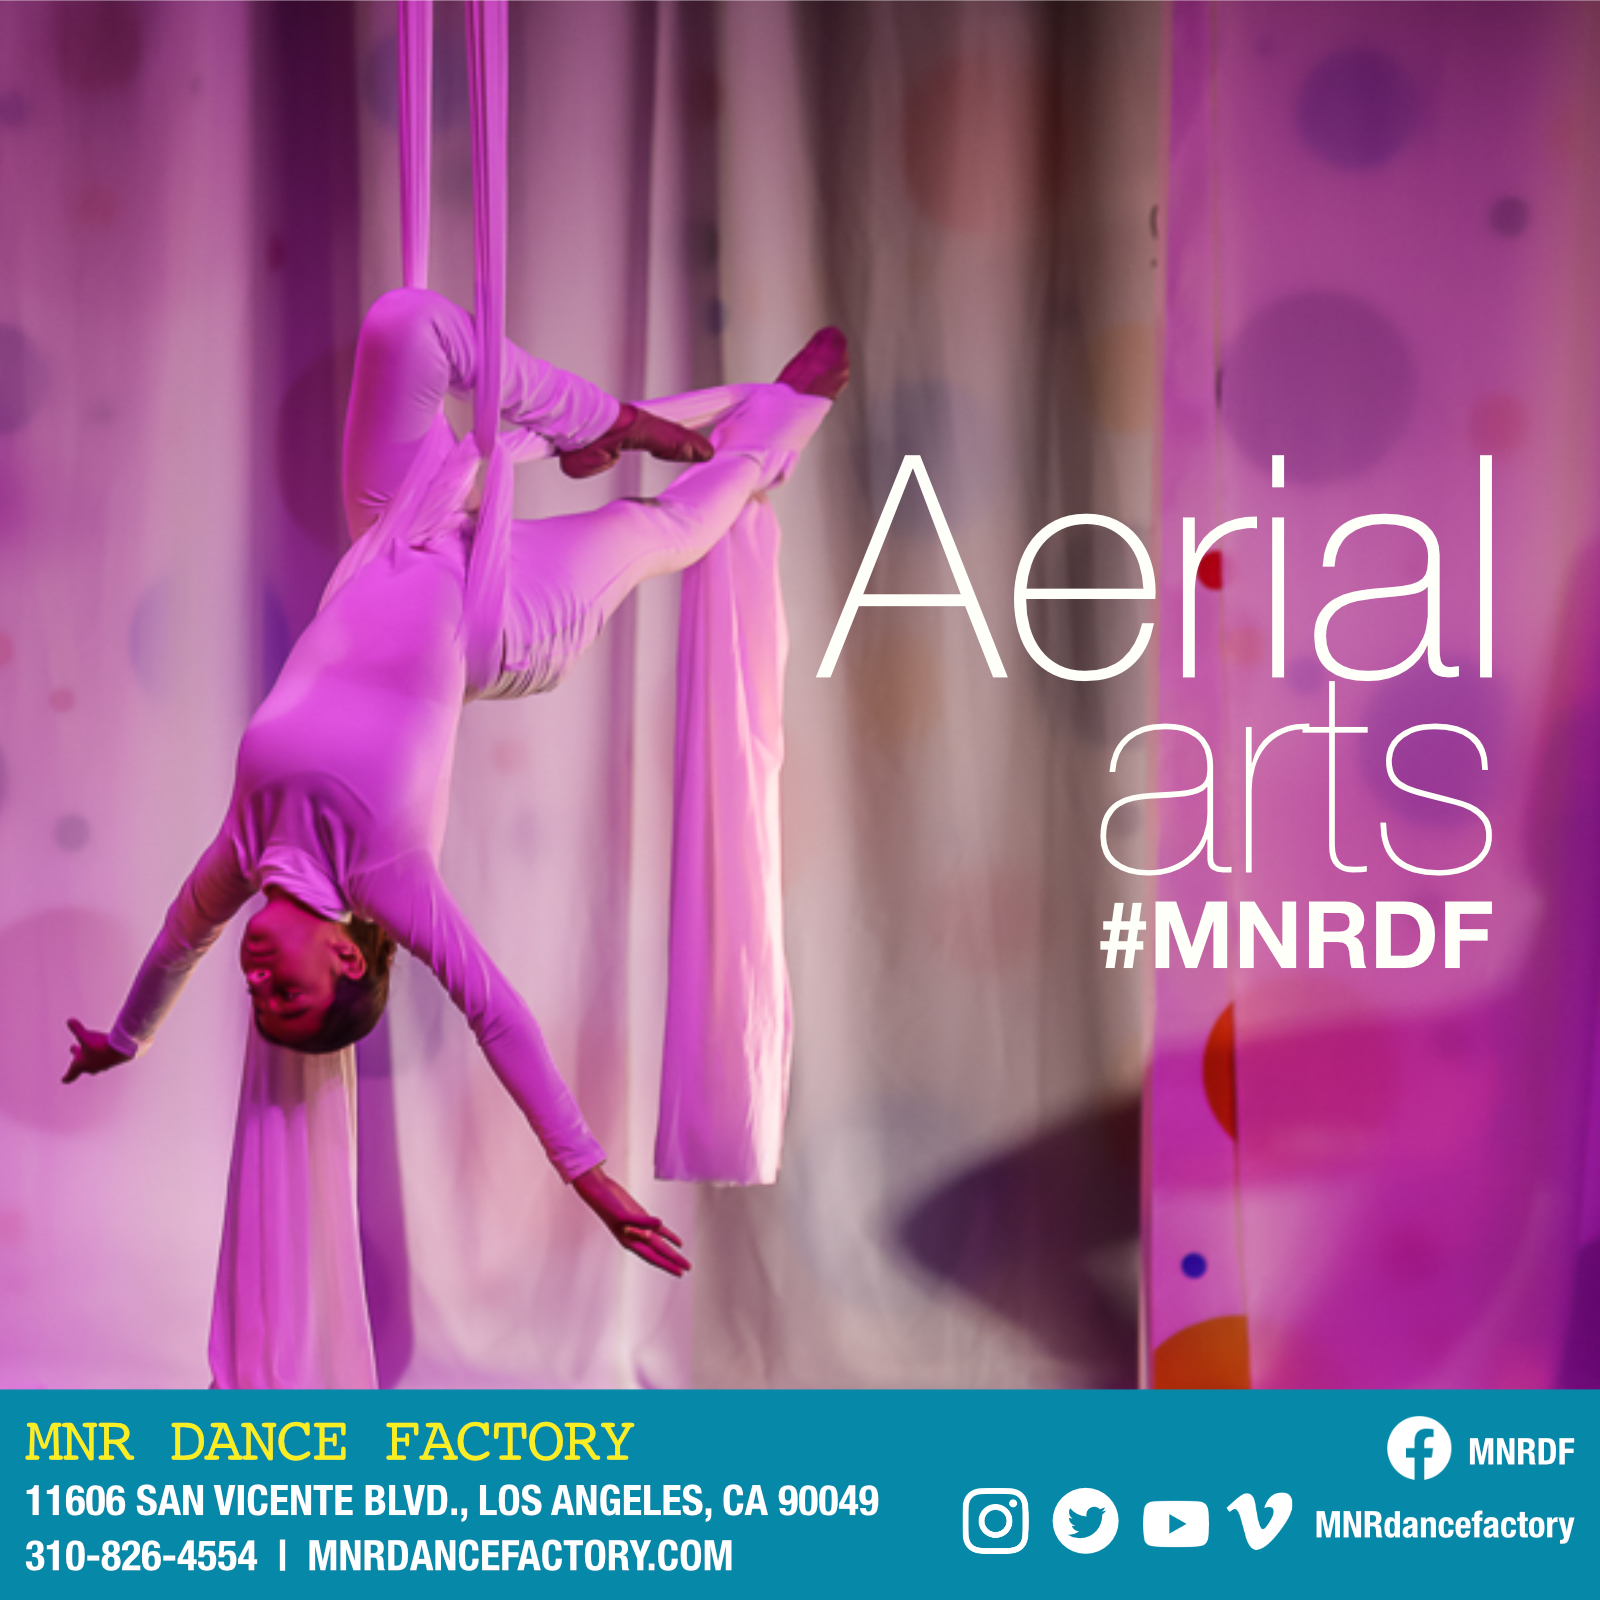 Aerial Arts - Aerial art refers to dance-like, acrobatic physical movement performed while suspended in the air. MNR DF offers training in aerial silk (also known as fabric or tissue) and aerial hoop. Our Aerial training is led by renown Cirque Du Soleil star and International Rhythmic GYMNASTIC Championship medalist, Ramon Moore and world renown aerial artist Maya Kramer.